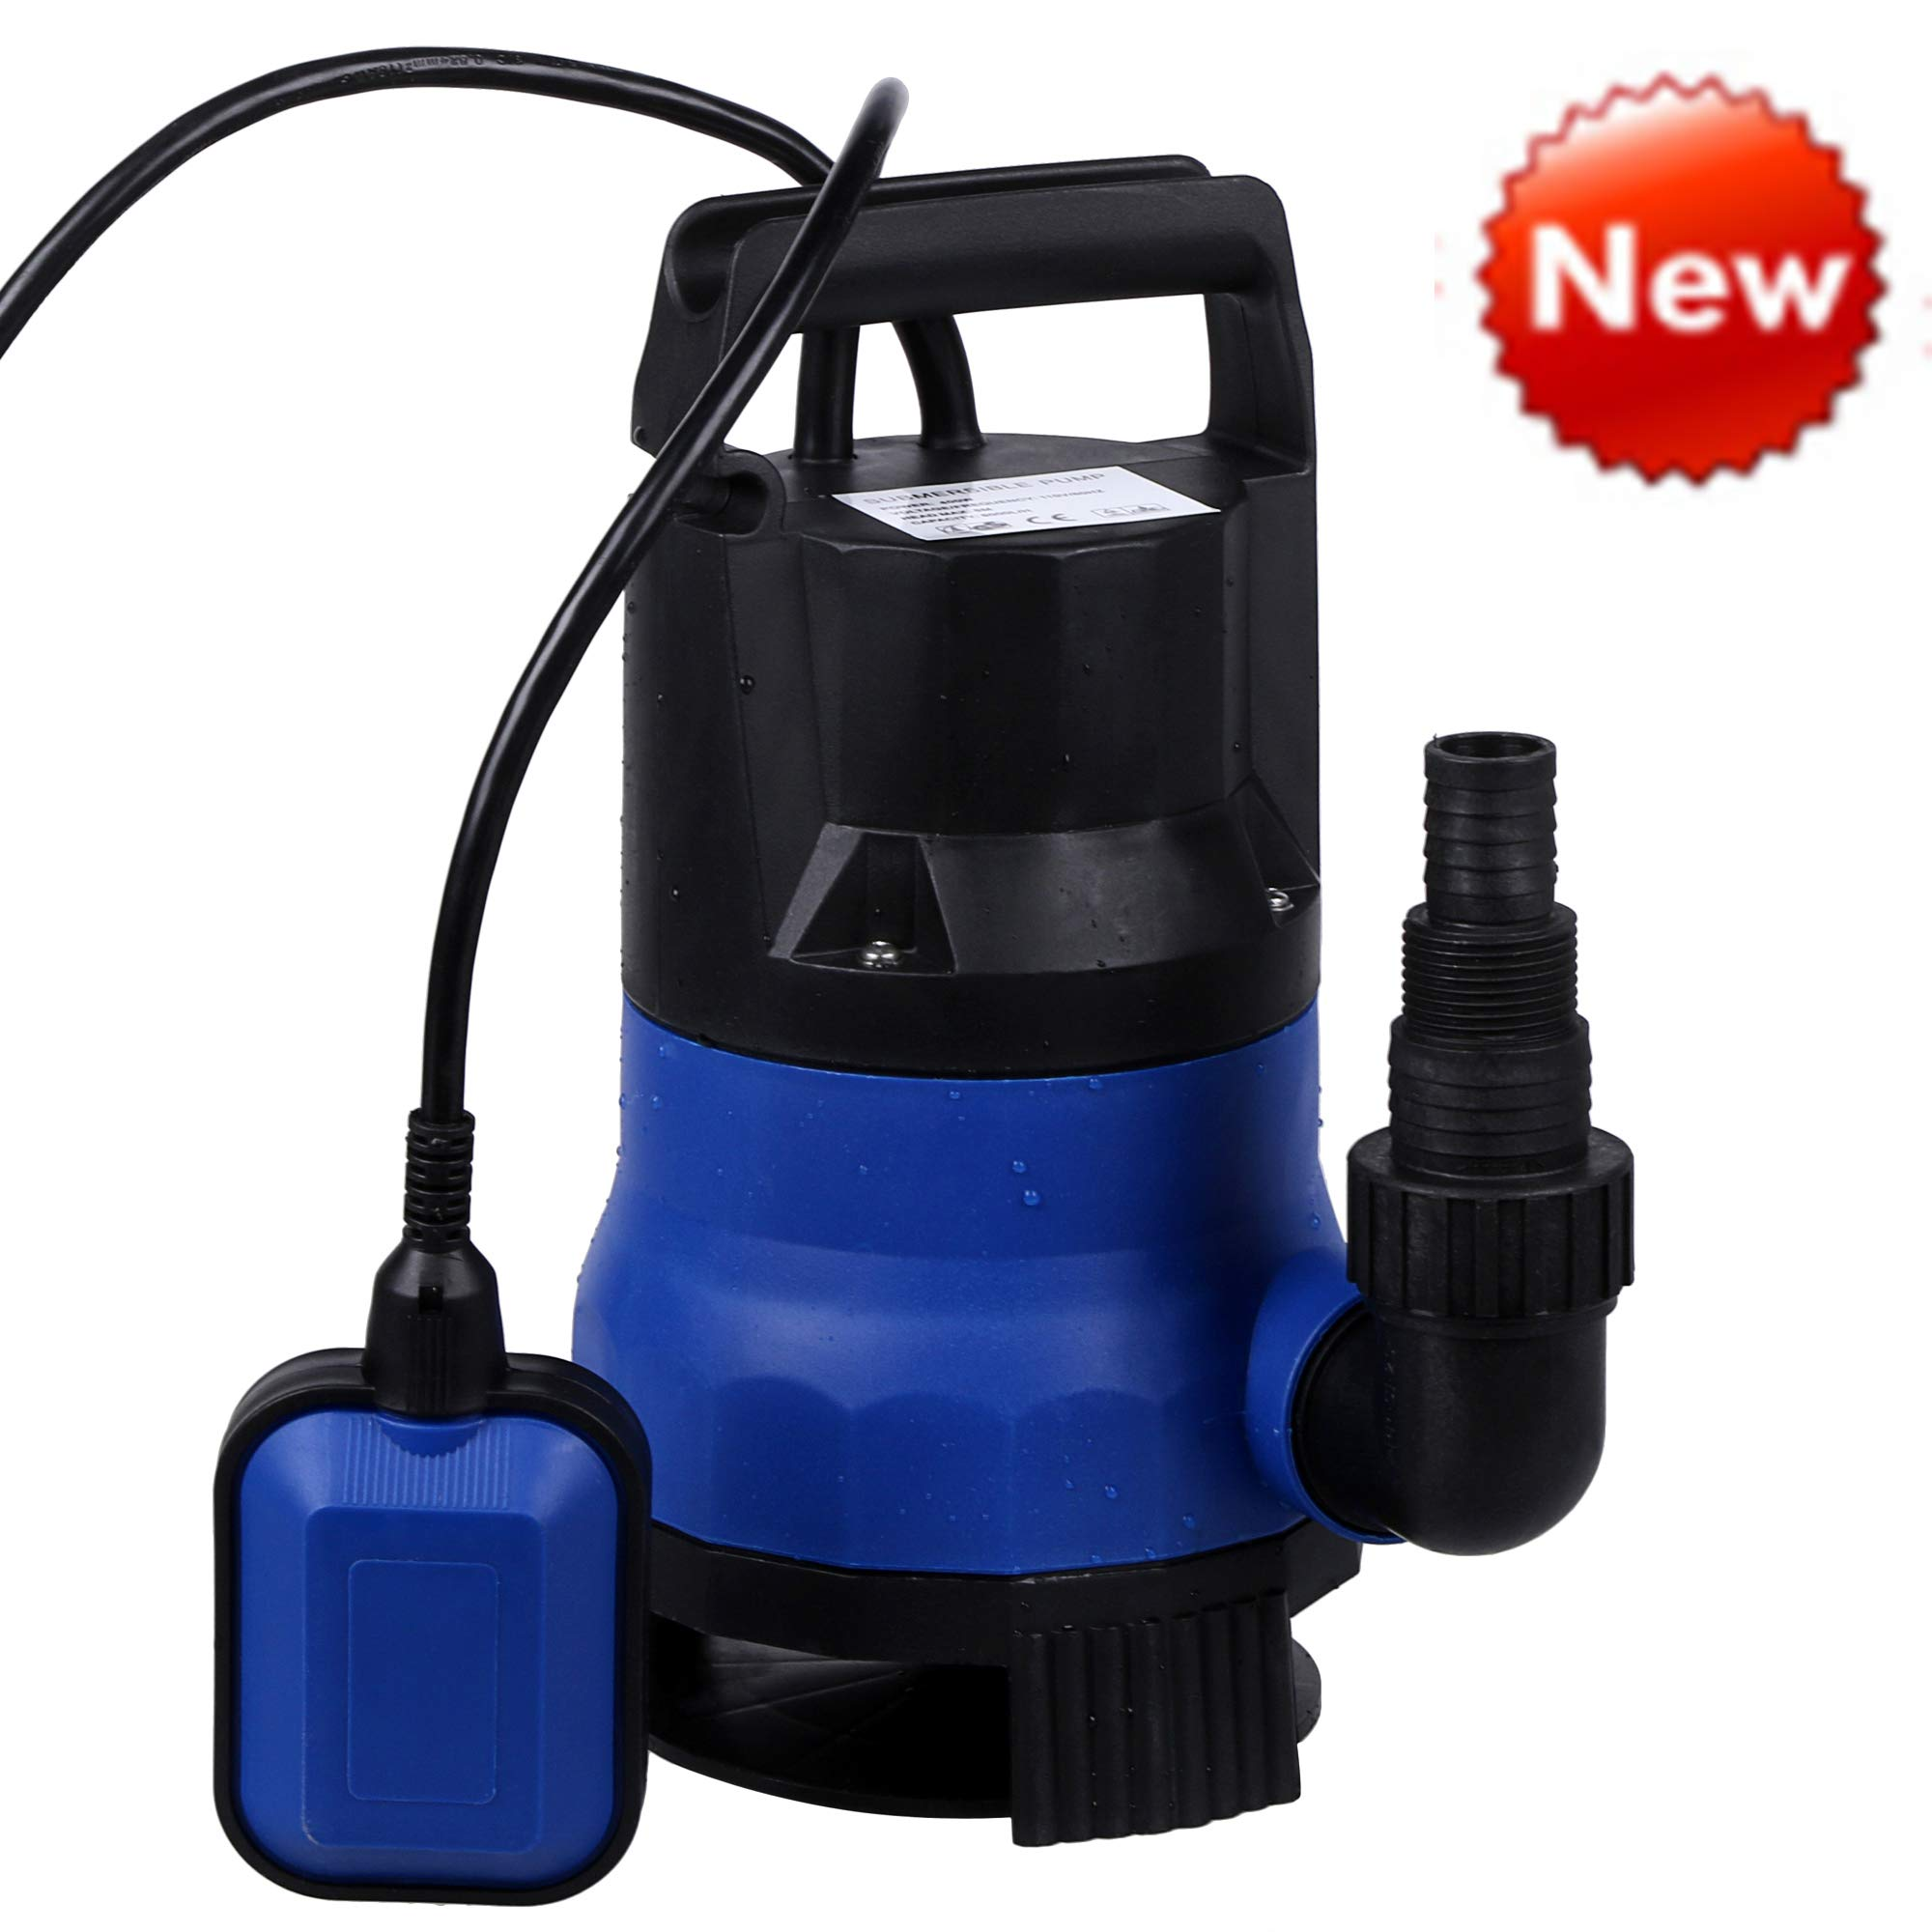 Sump Pump 1/2HP Clean Dirty Water Submersible Pump 400W Pump for Swimming Pool Drain (Blue) by Homdox